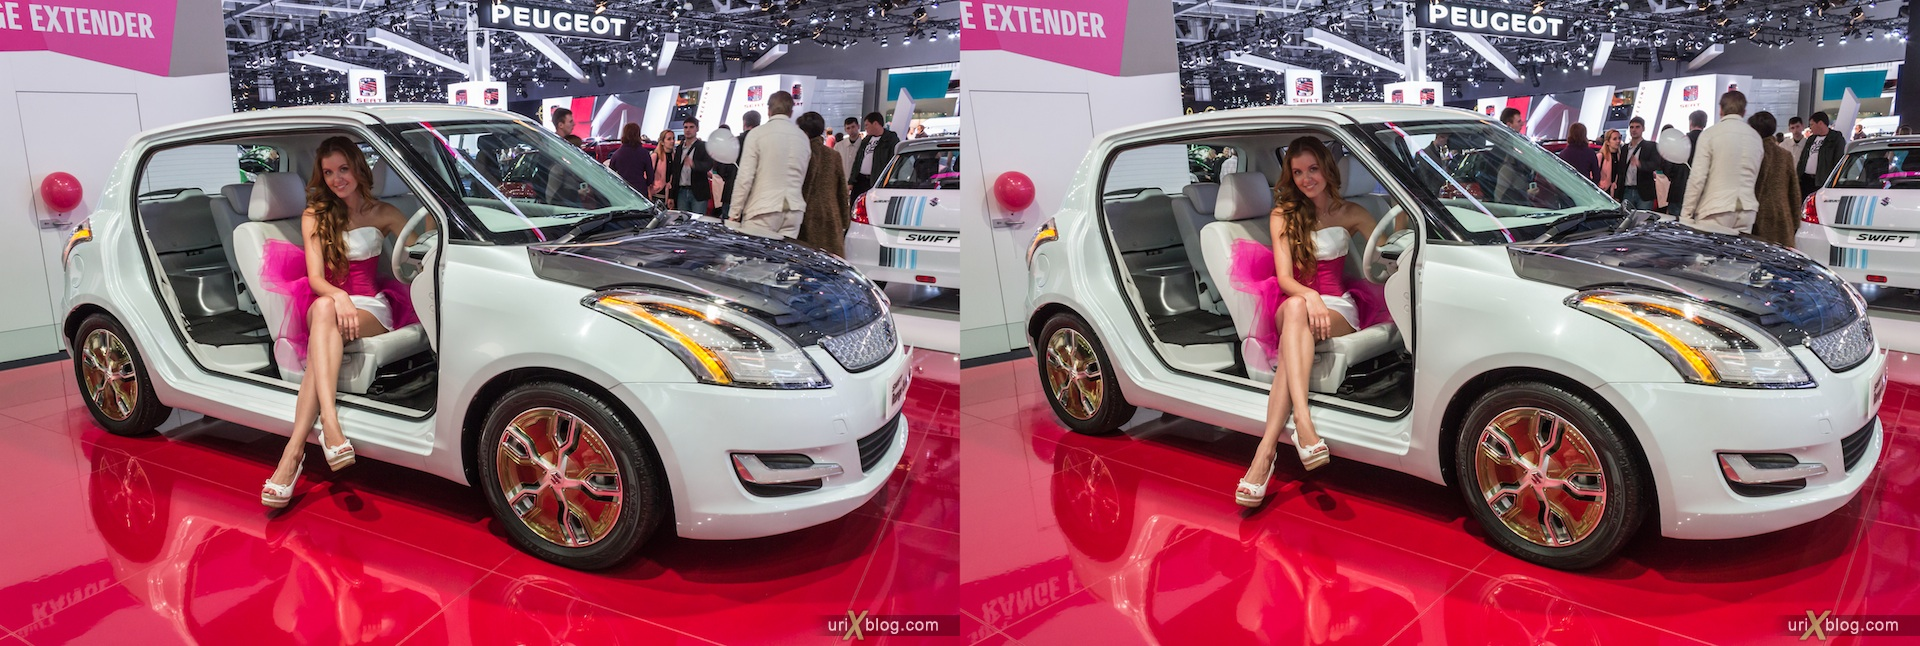 2012, Peugeot Swift, girl, model, Moscow International Automobile Salon, auto show, 3D, stereo pair, cross-eyed, crossview